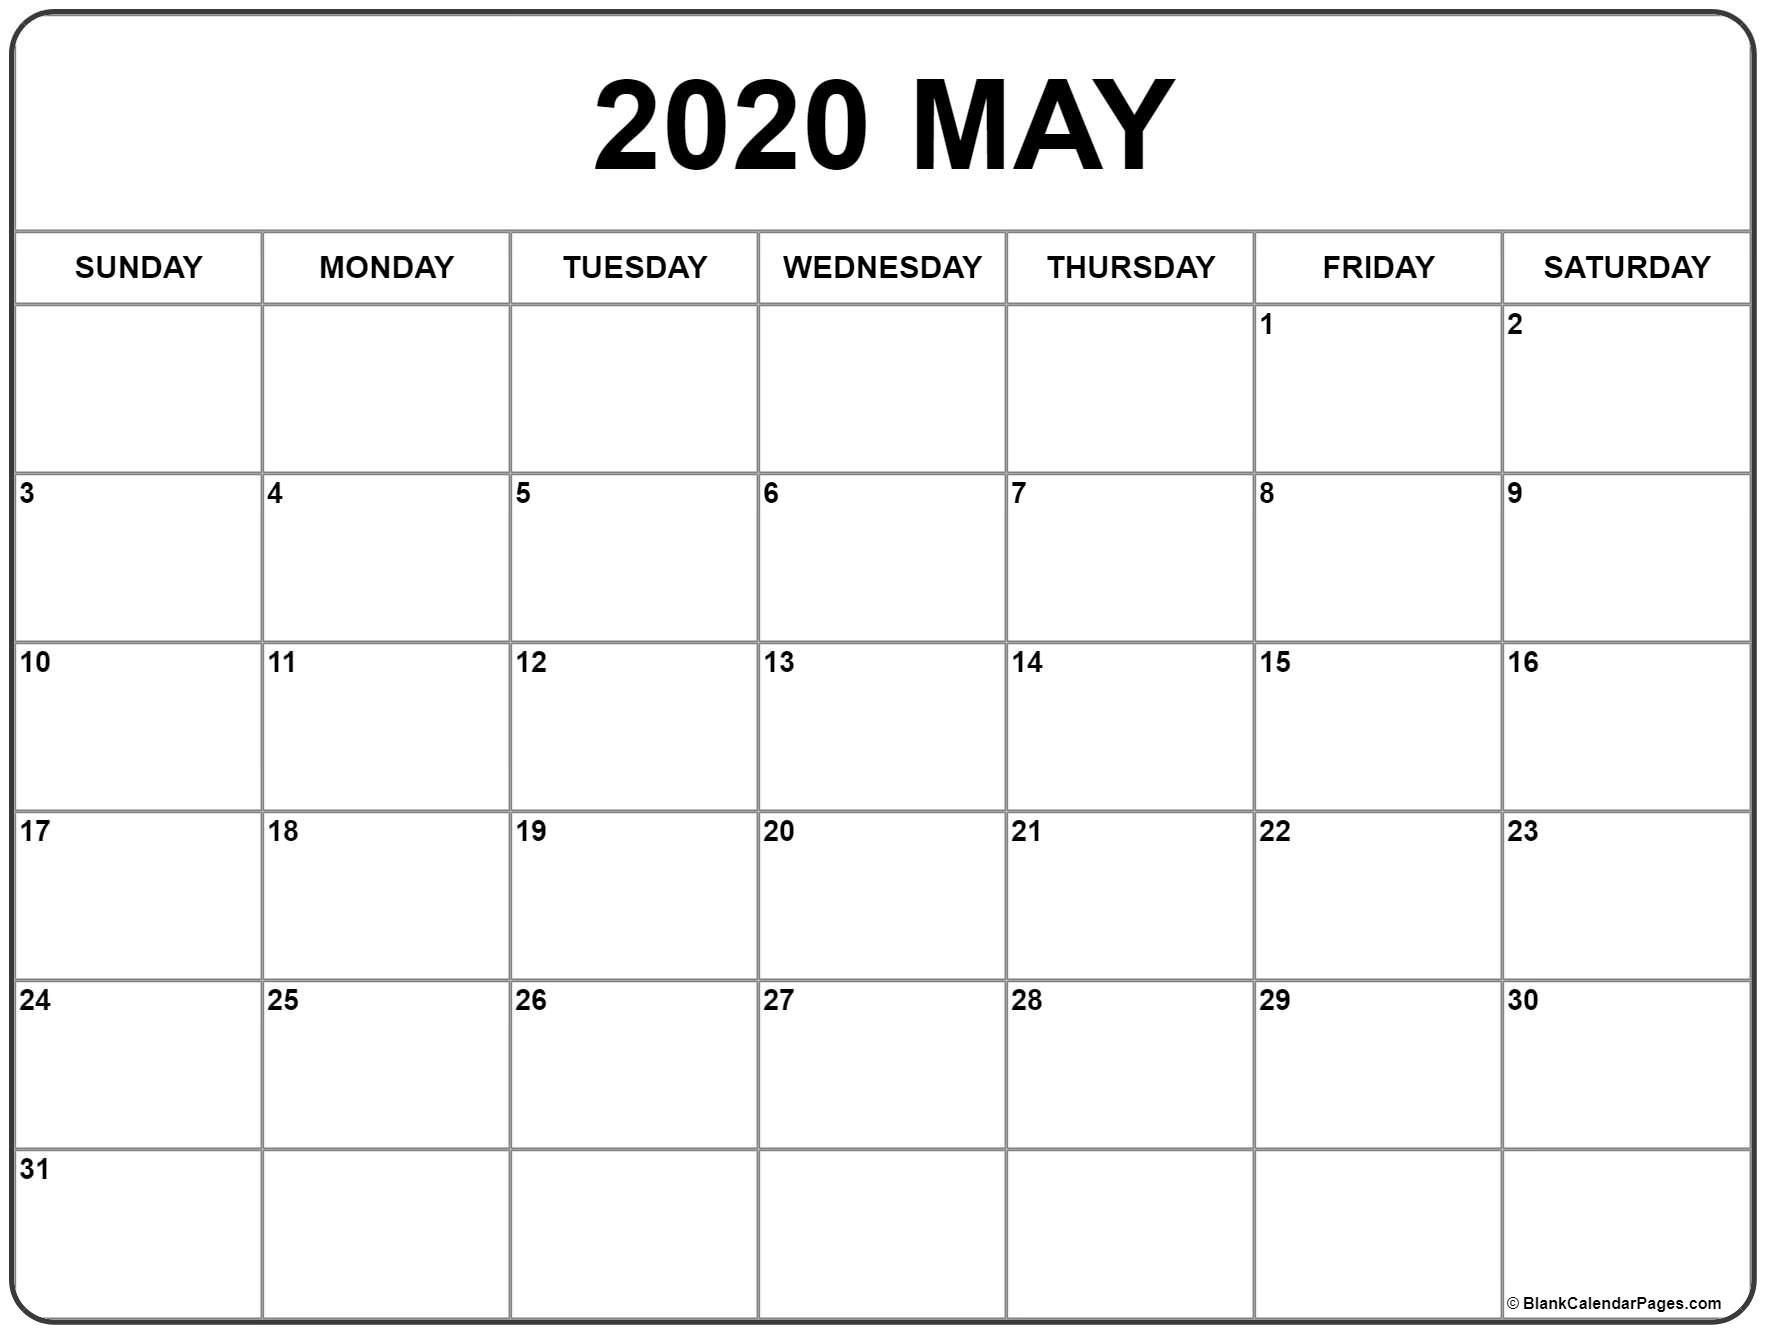 May 2020 Calendar | Free Printable Monthly Calendars